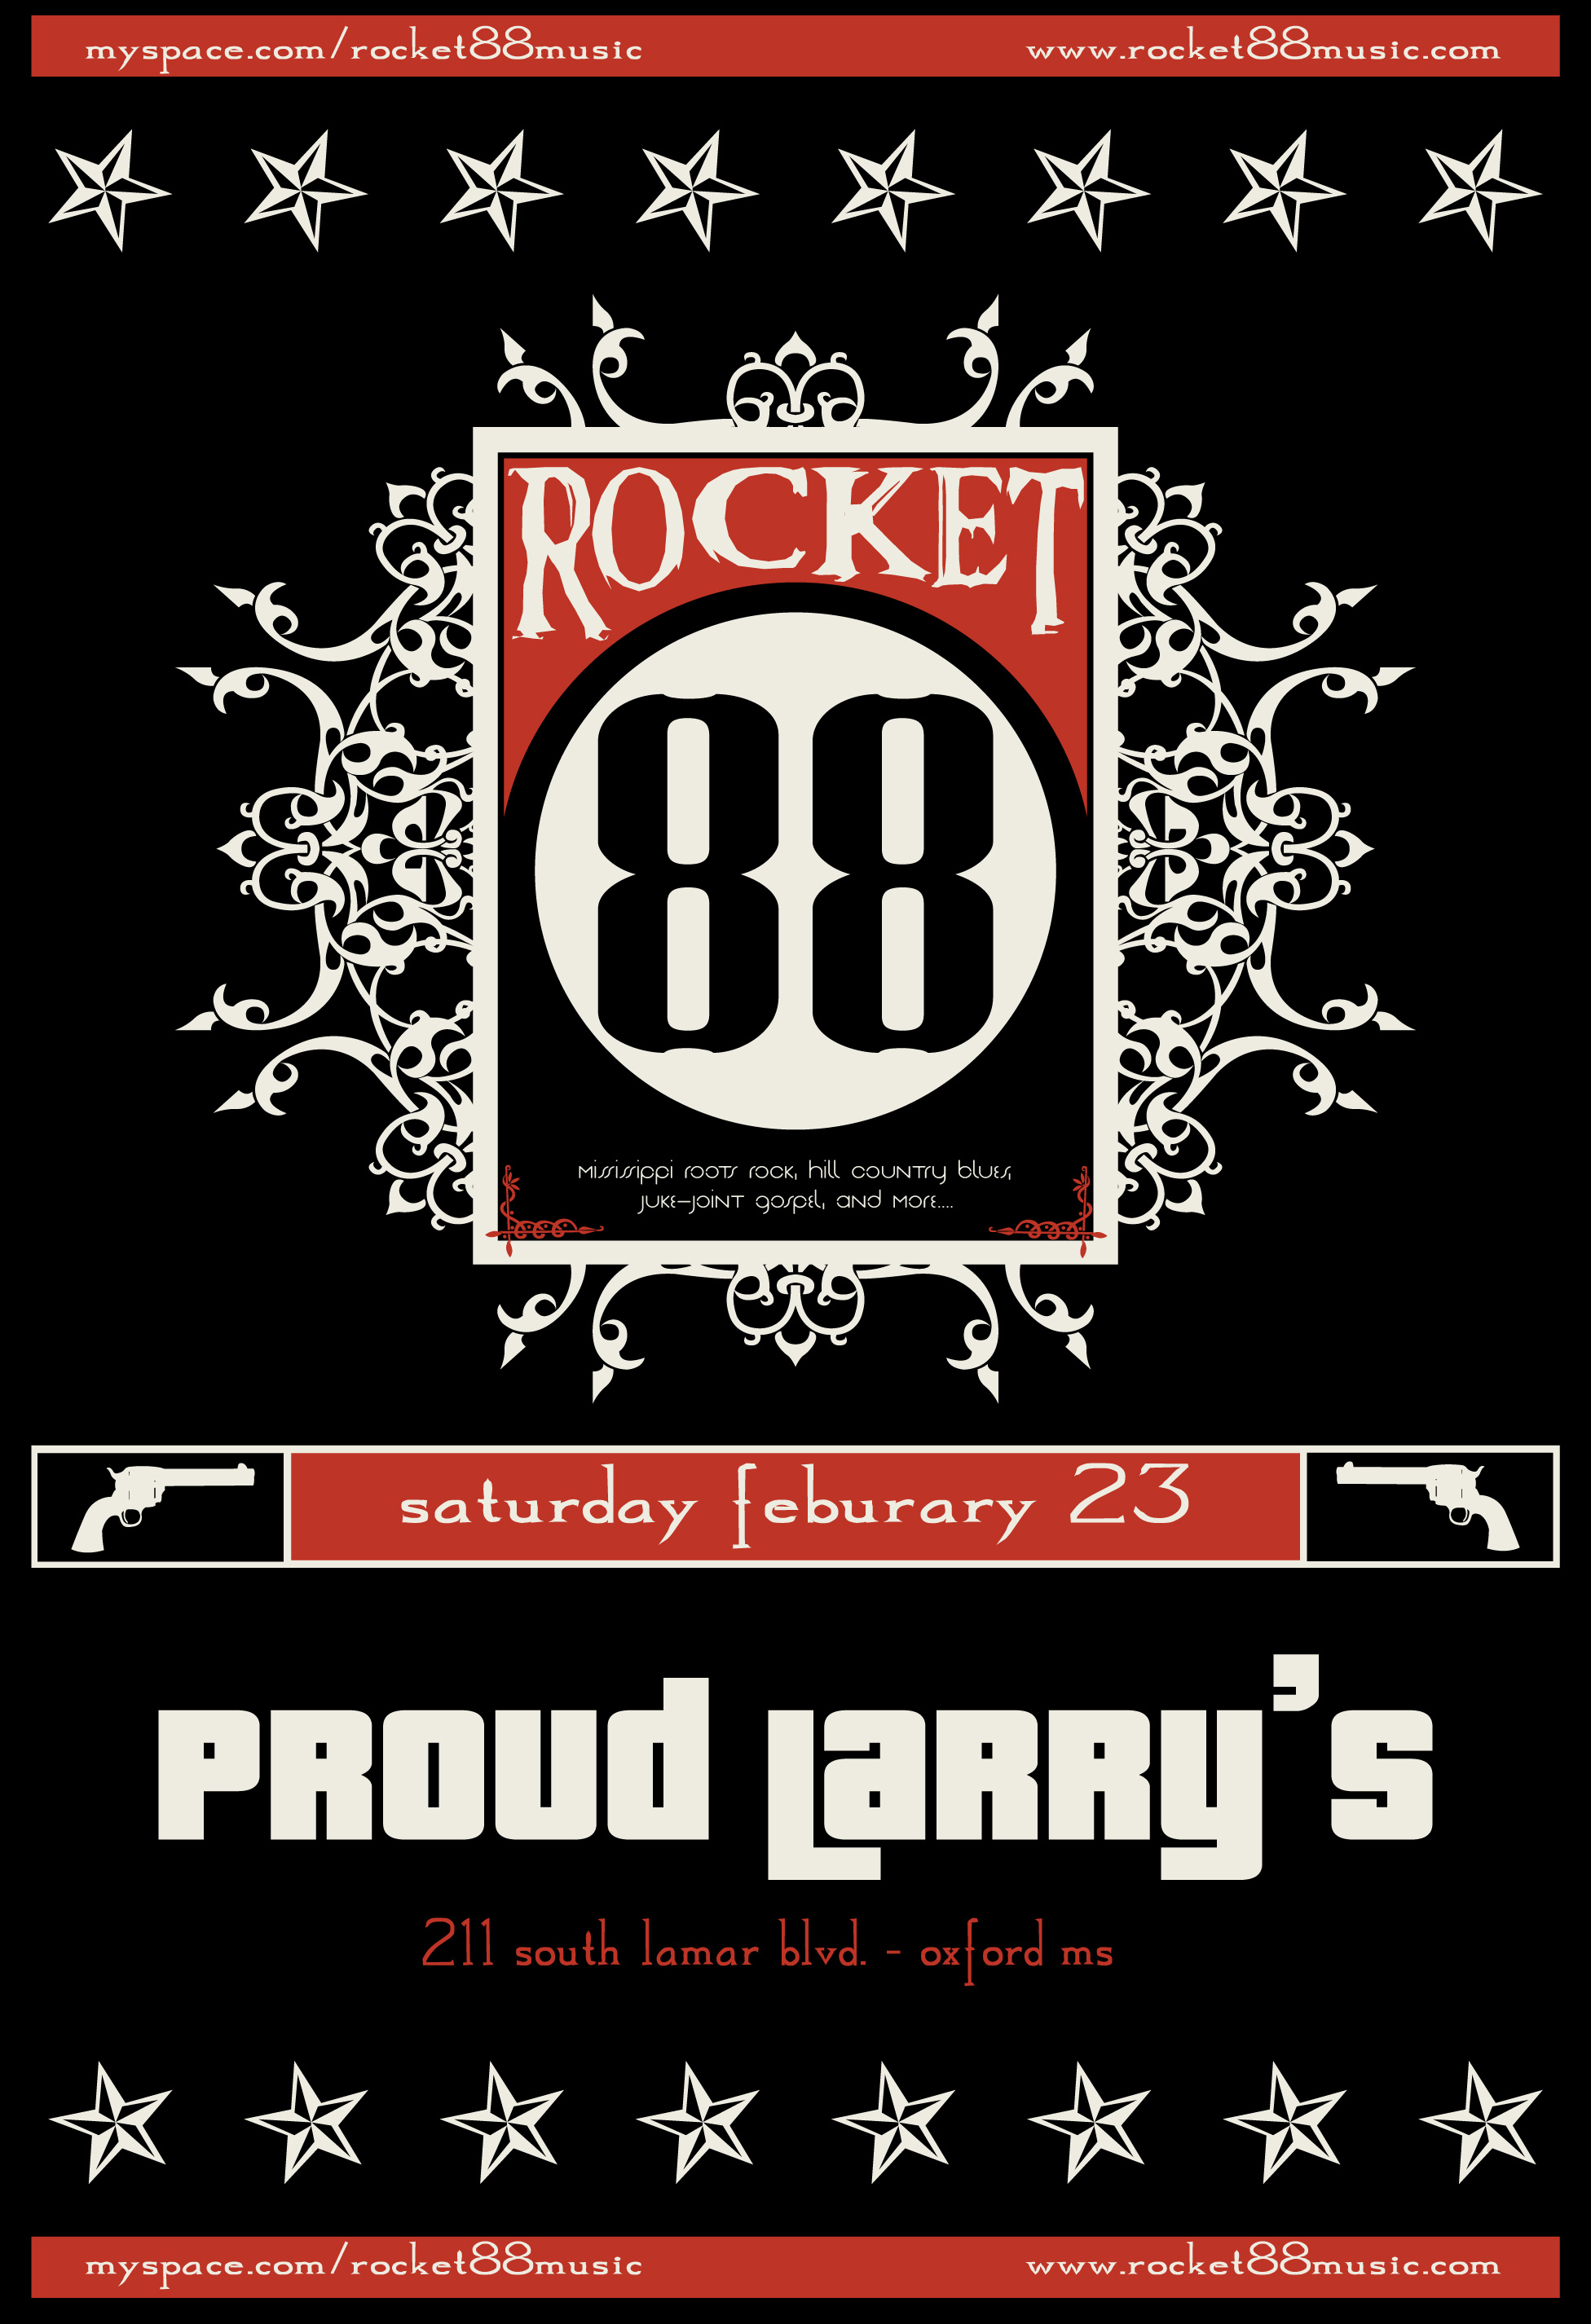 GC_Rocket88-lowres-alt